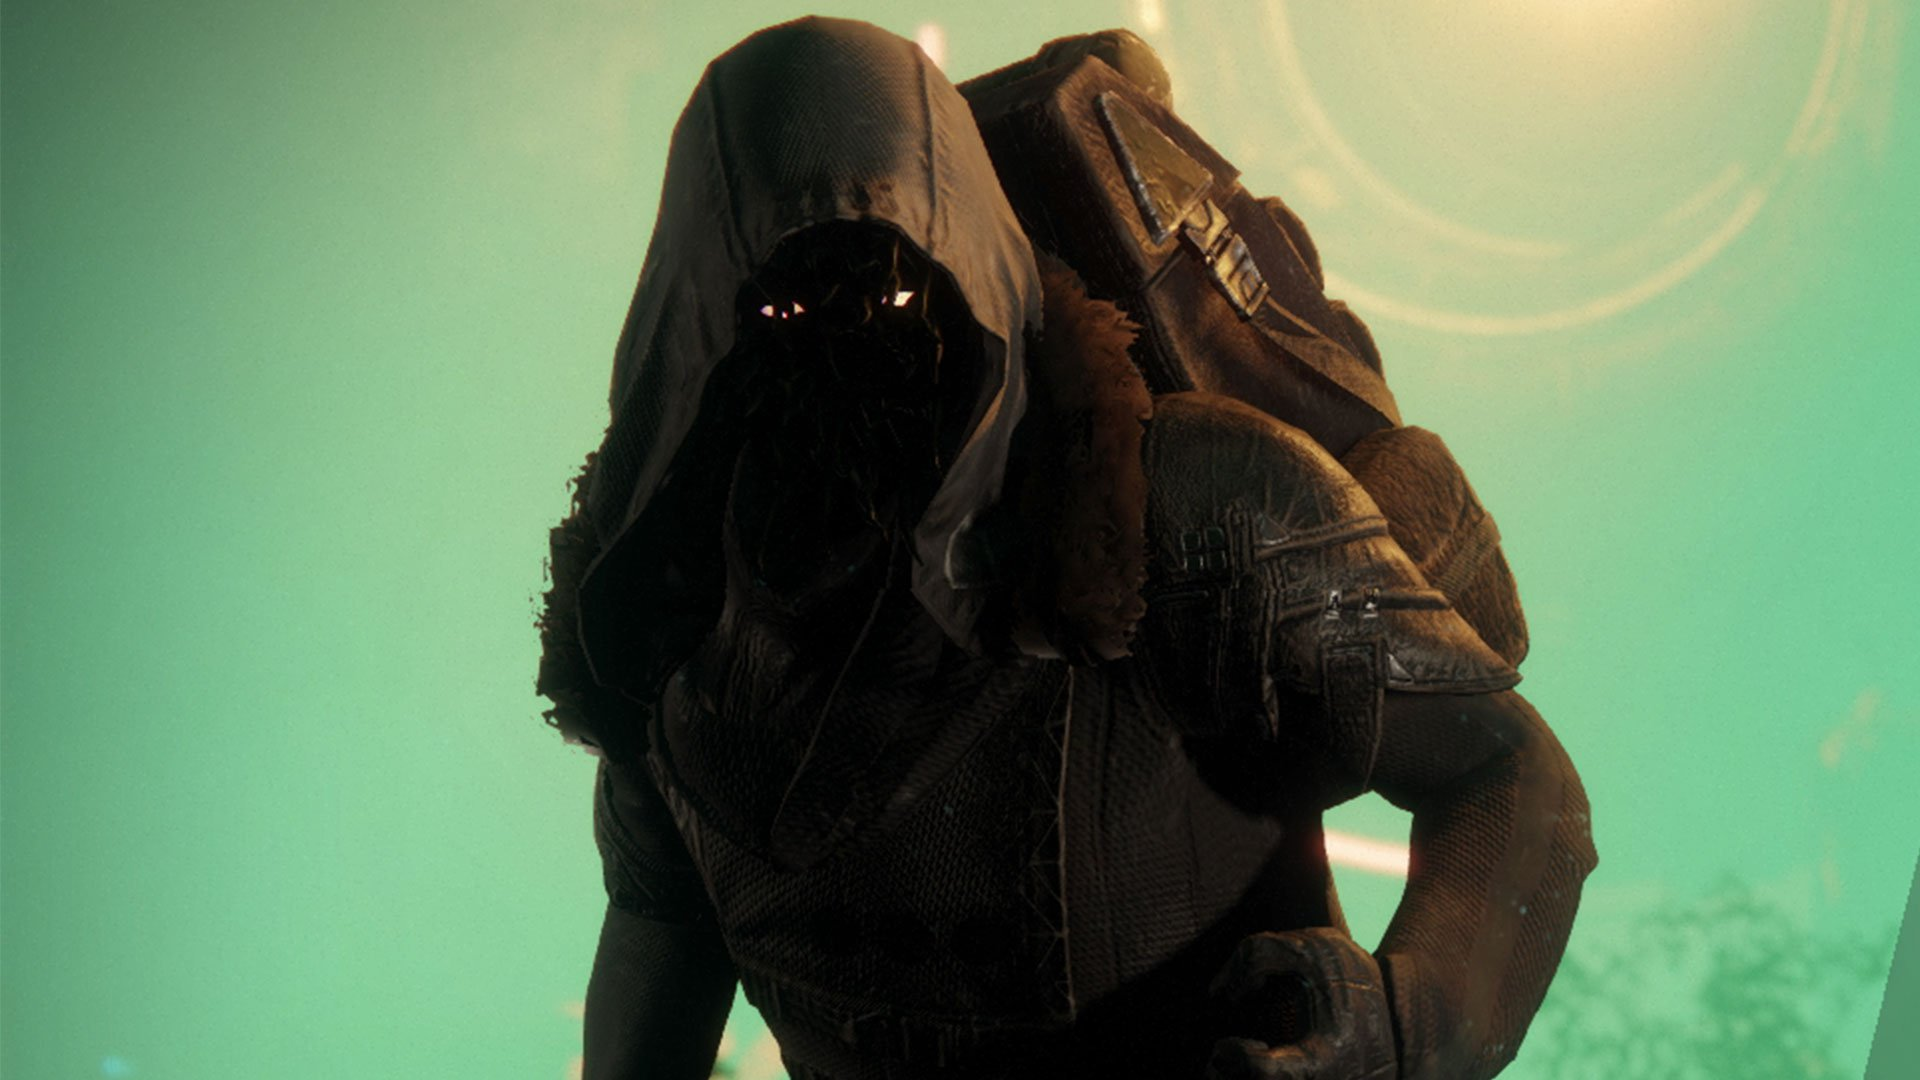 Xur can be found in a new Destiny 2 location this week on Nessus near Calus' Barge in the Watcher's Grave area.